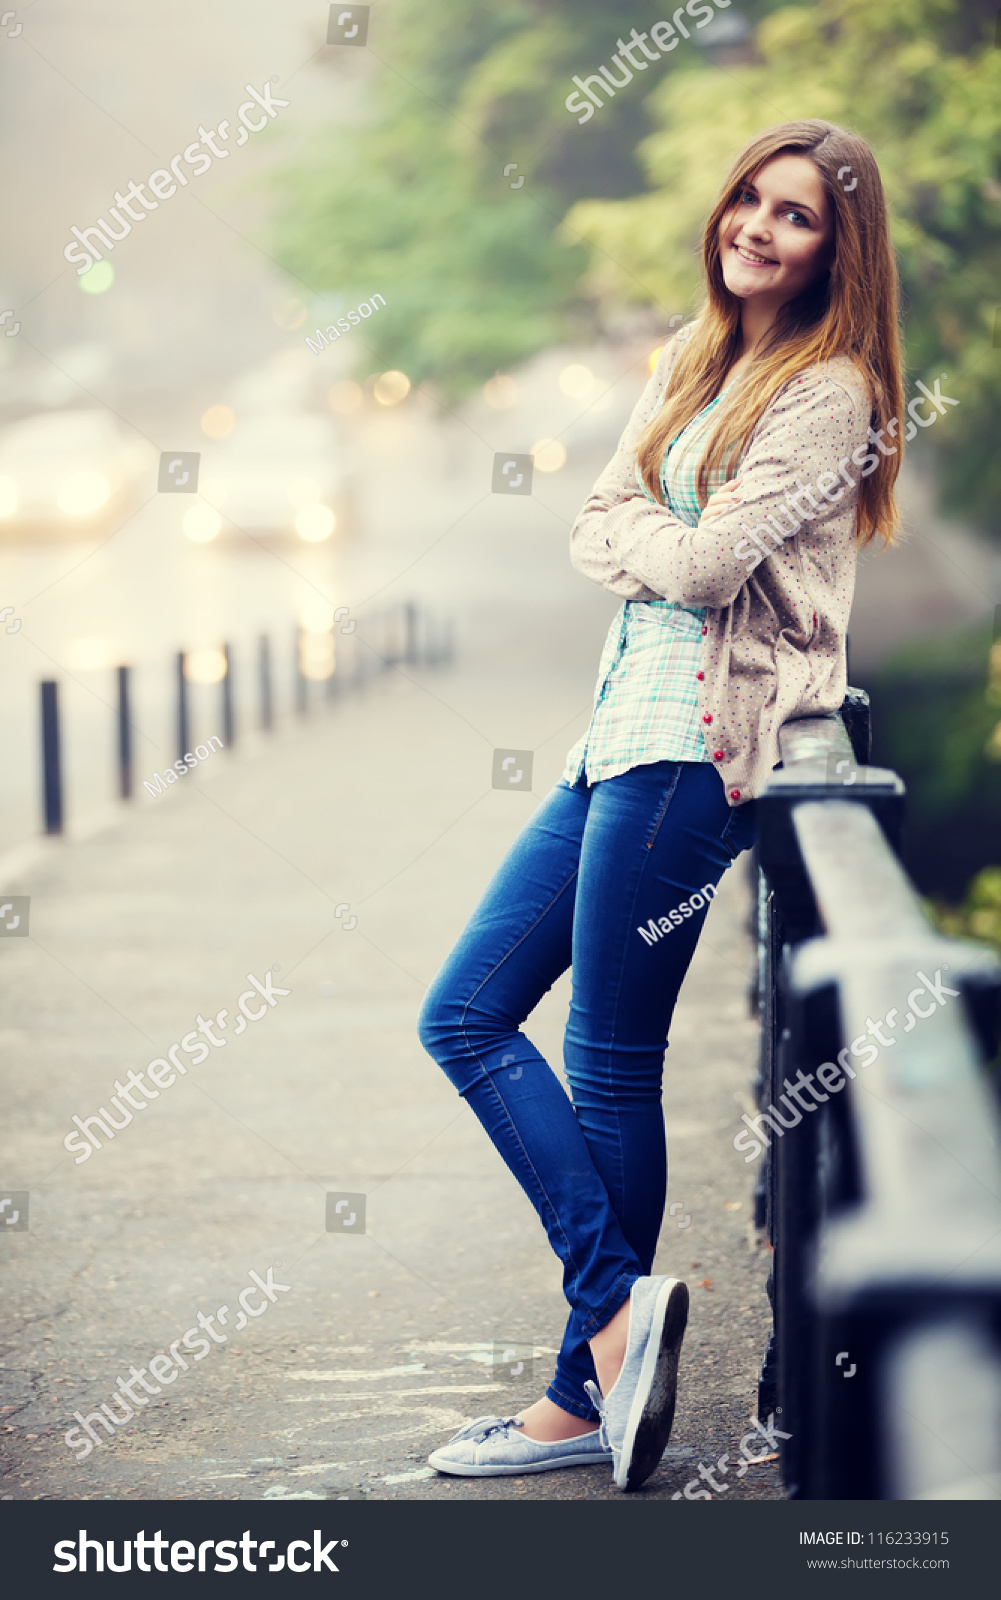 Style Teen Girl Street Stock Photo 116233915